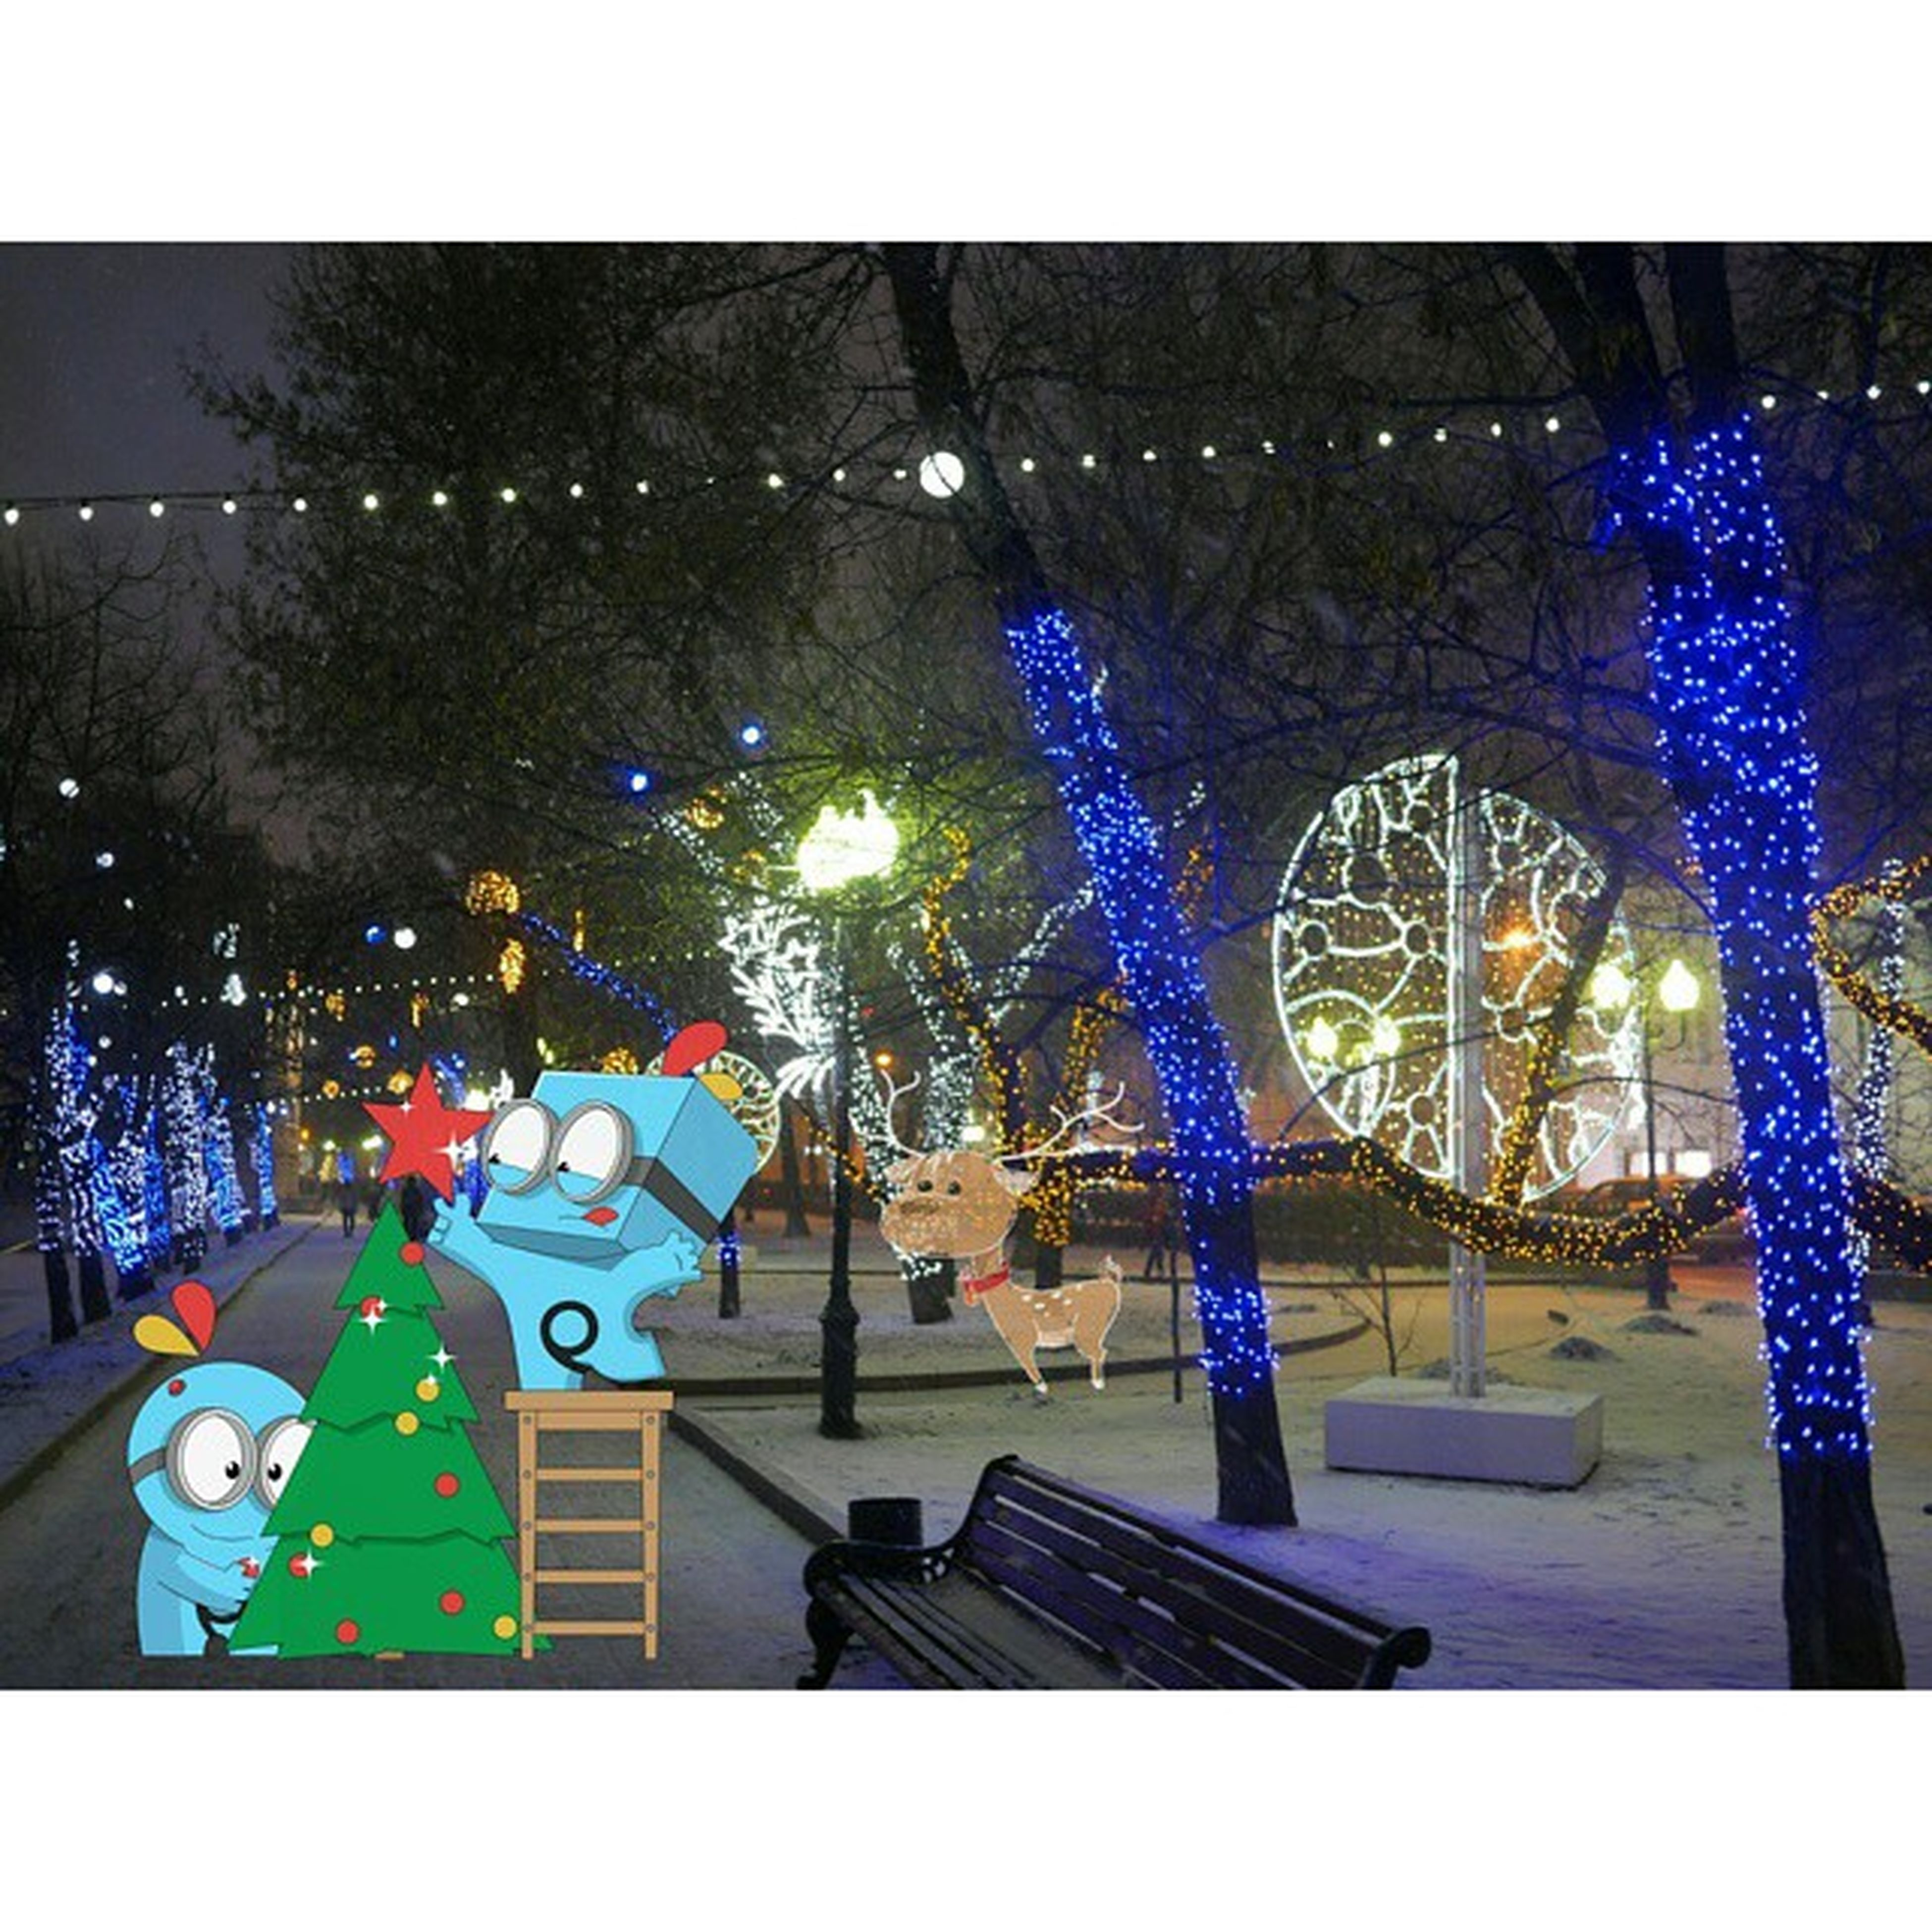 illuminated, multi colored, night, amusement park, decoration, built structure, arts culture and entertainment, architecture, lighting equipment, celebration, building exterior, amusement park ride, transfer print, art, auto post production filter, art and craft, blue, christmas, city, tree